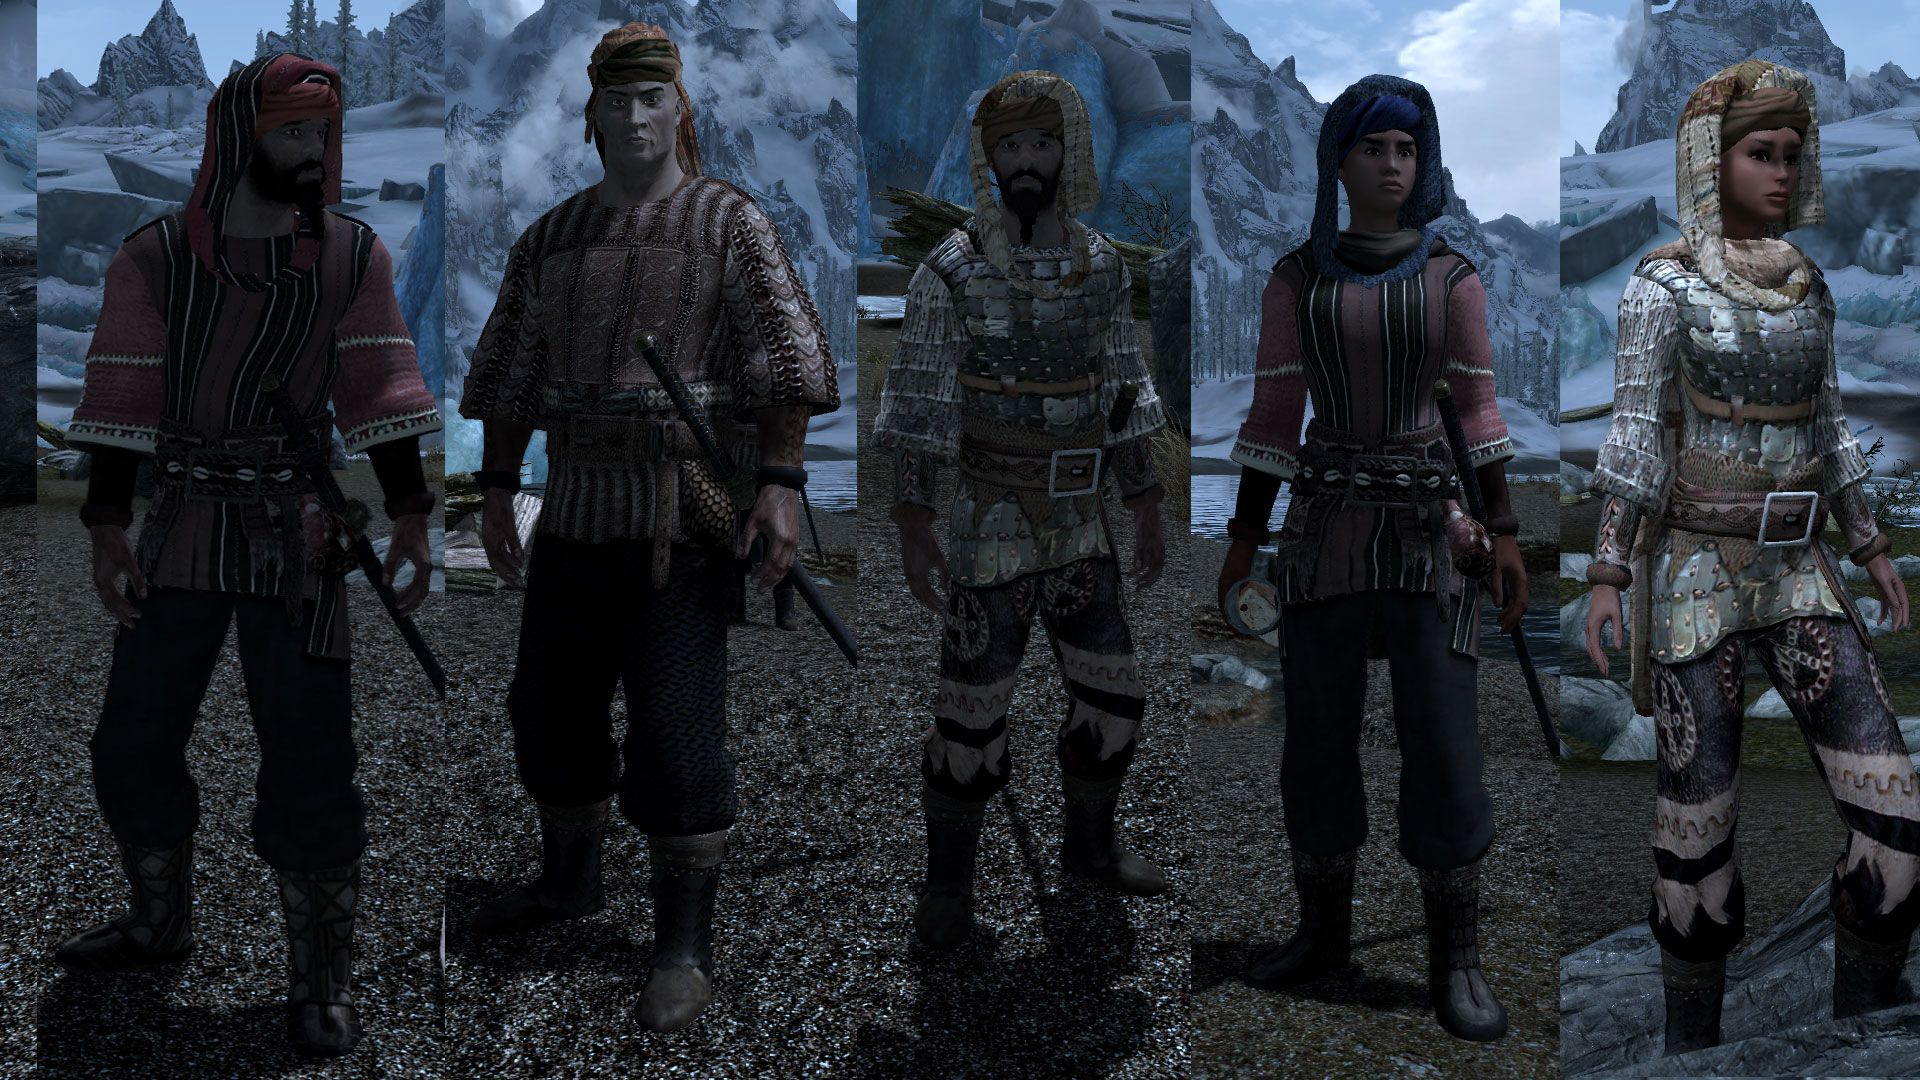 Redguard Fashion SSE - Tasheni Mod Project at Skyrim Special Edition Nexus - Mods and Community | Mod, Fashion, Skyrim